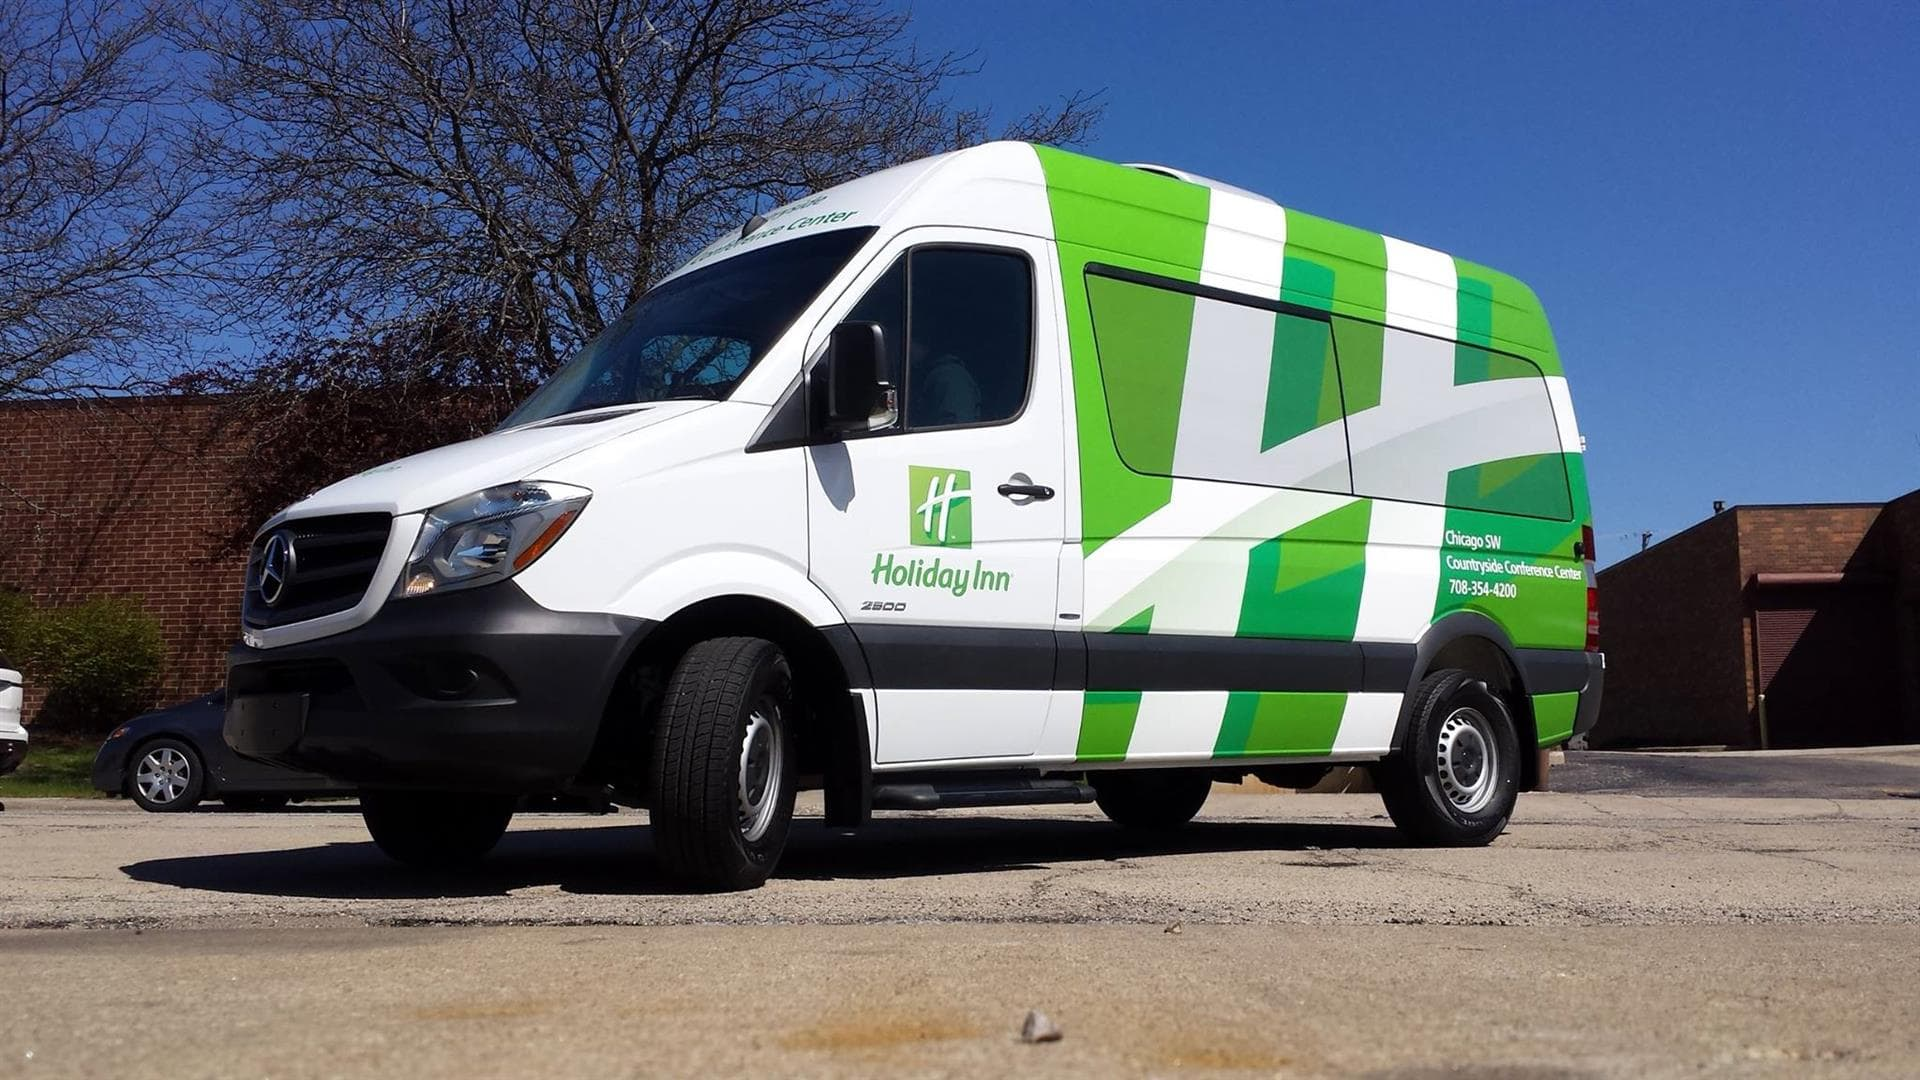 Holiday Inn Vehicle Wrap